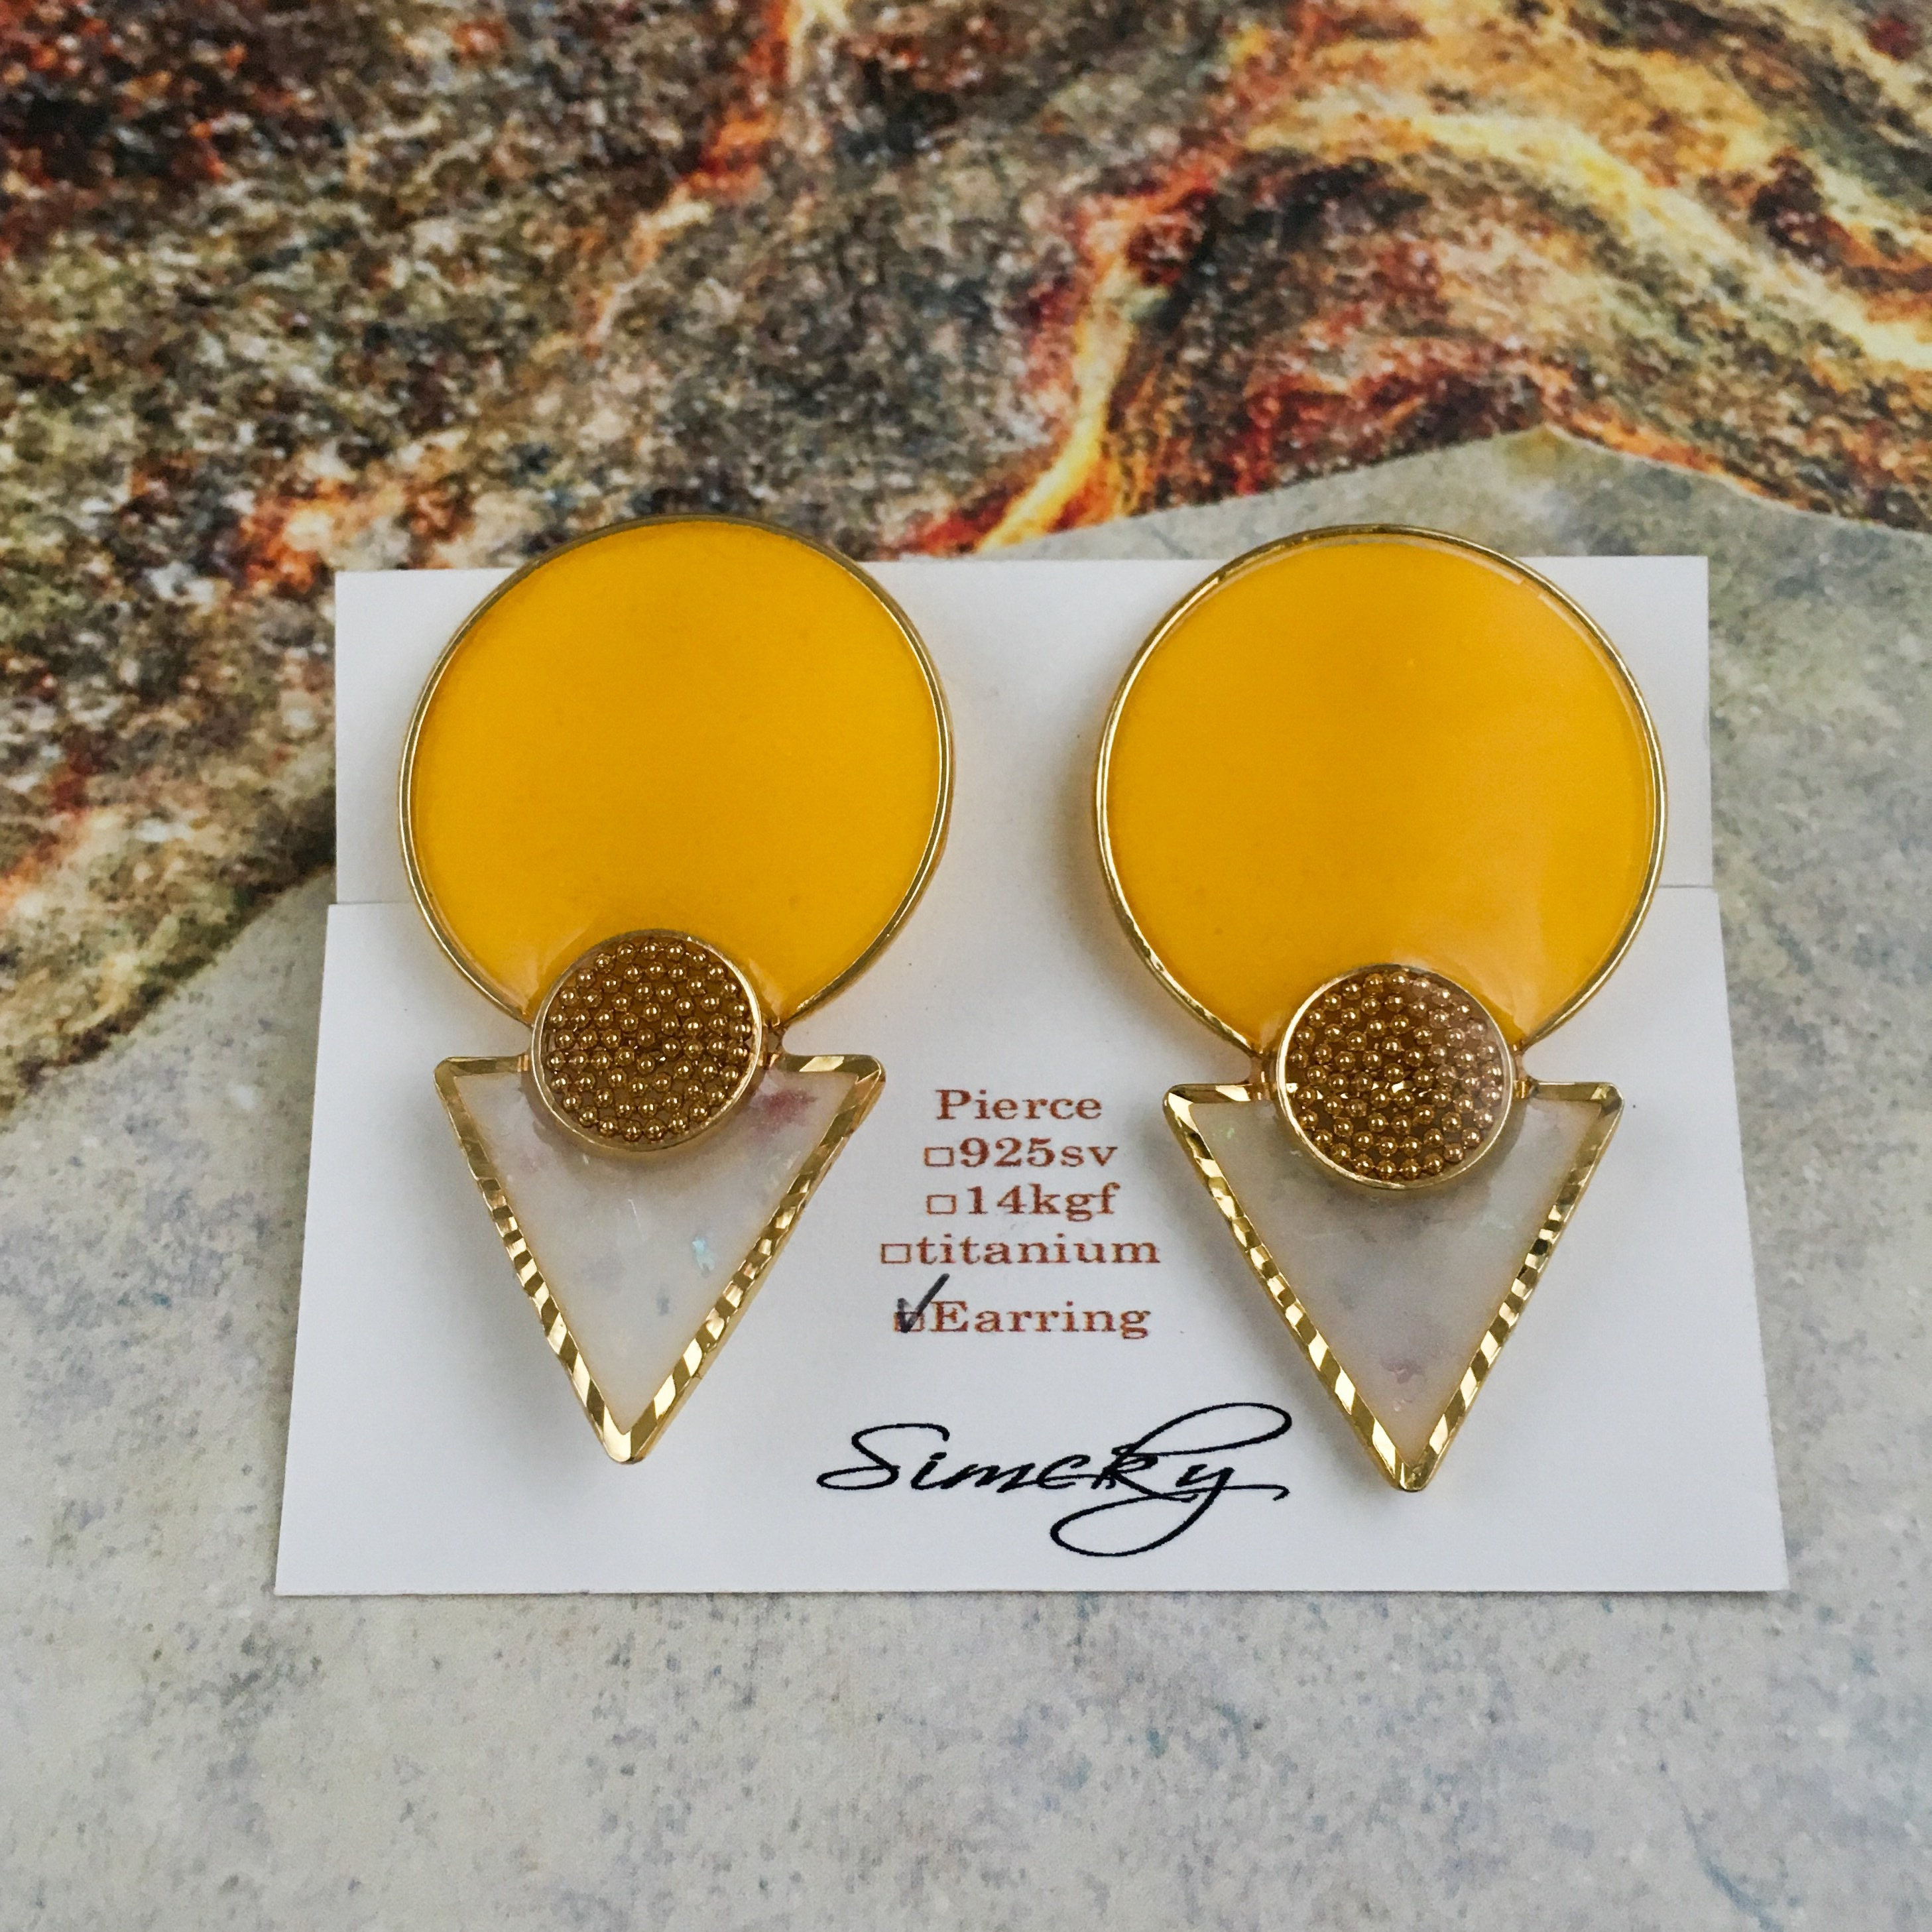 E-3 pierce14KGF/earring(yellow)